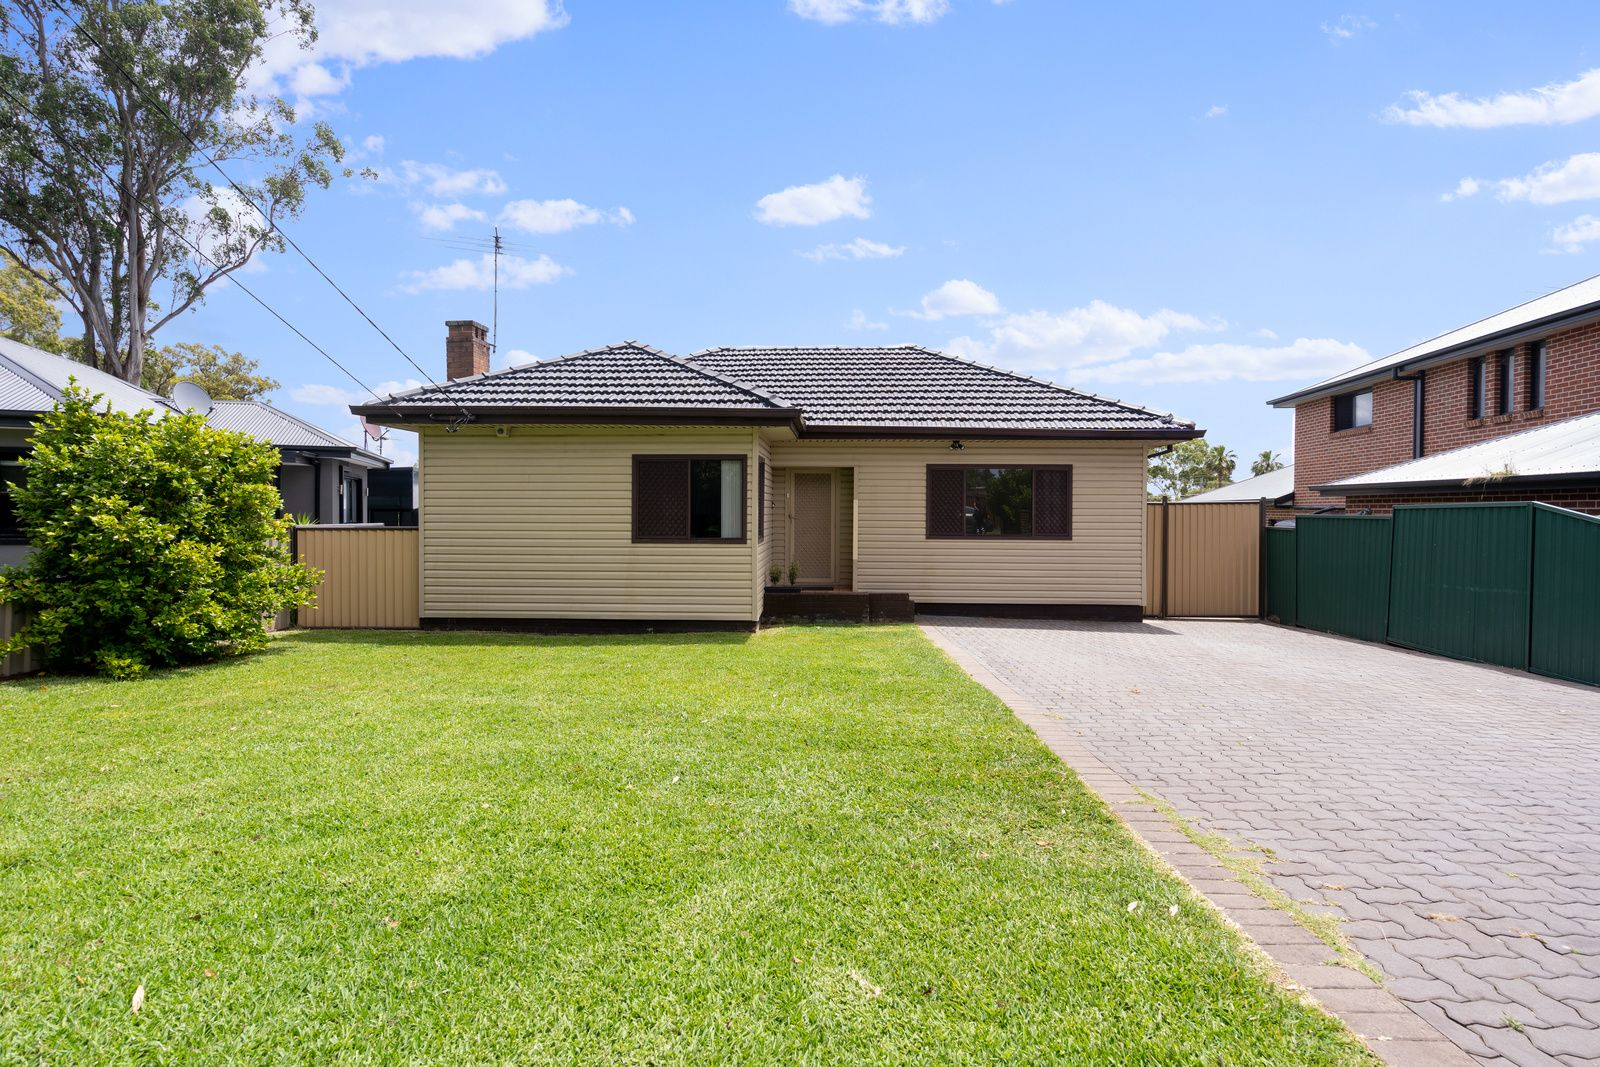 15 Mera Street, Guildford NSW 2161, Image 0